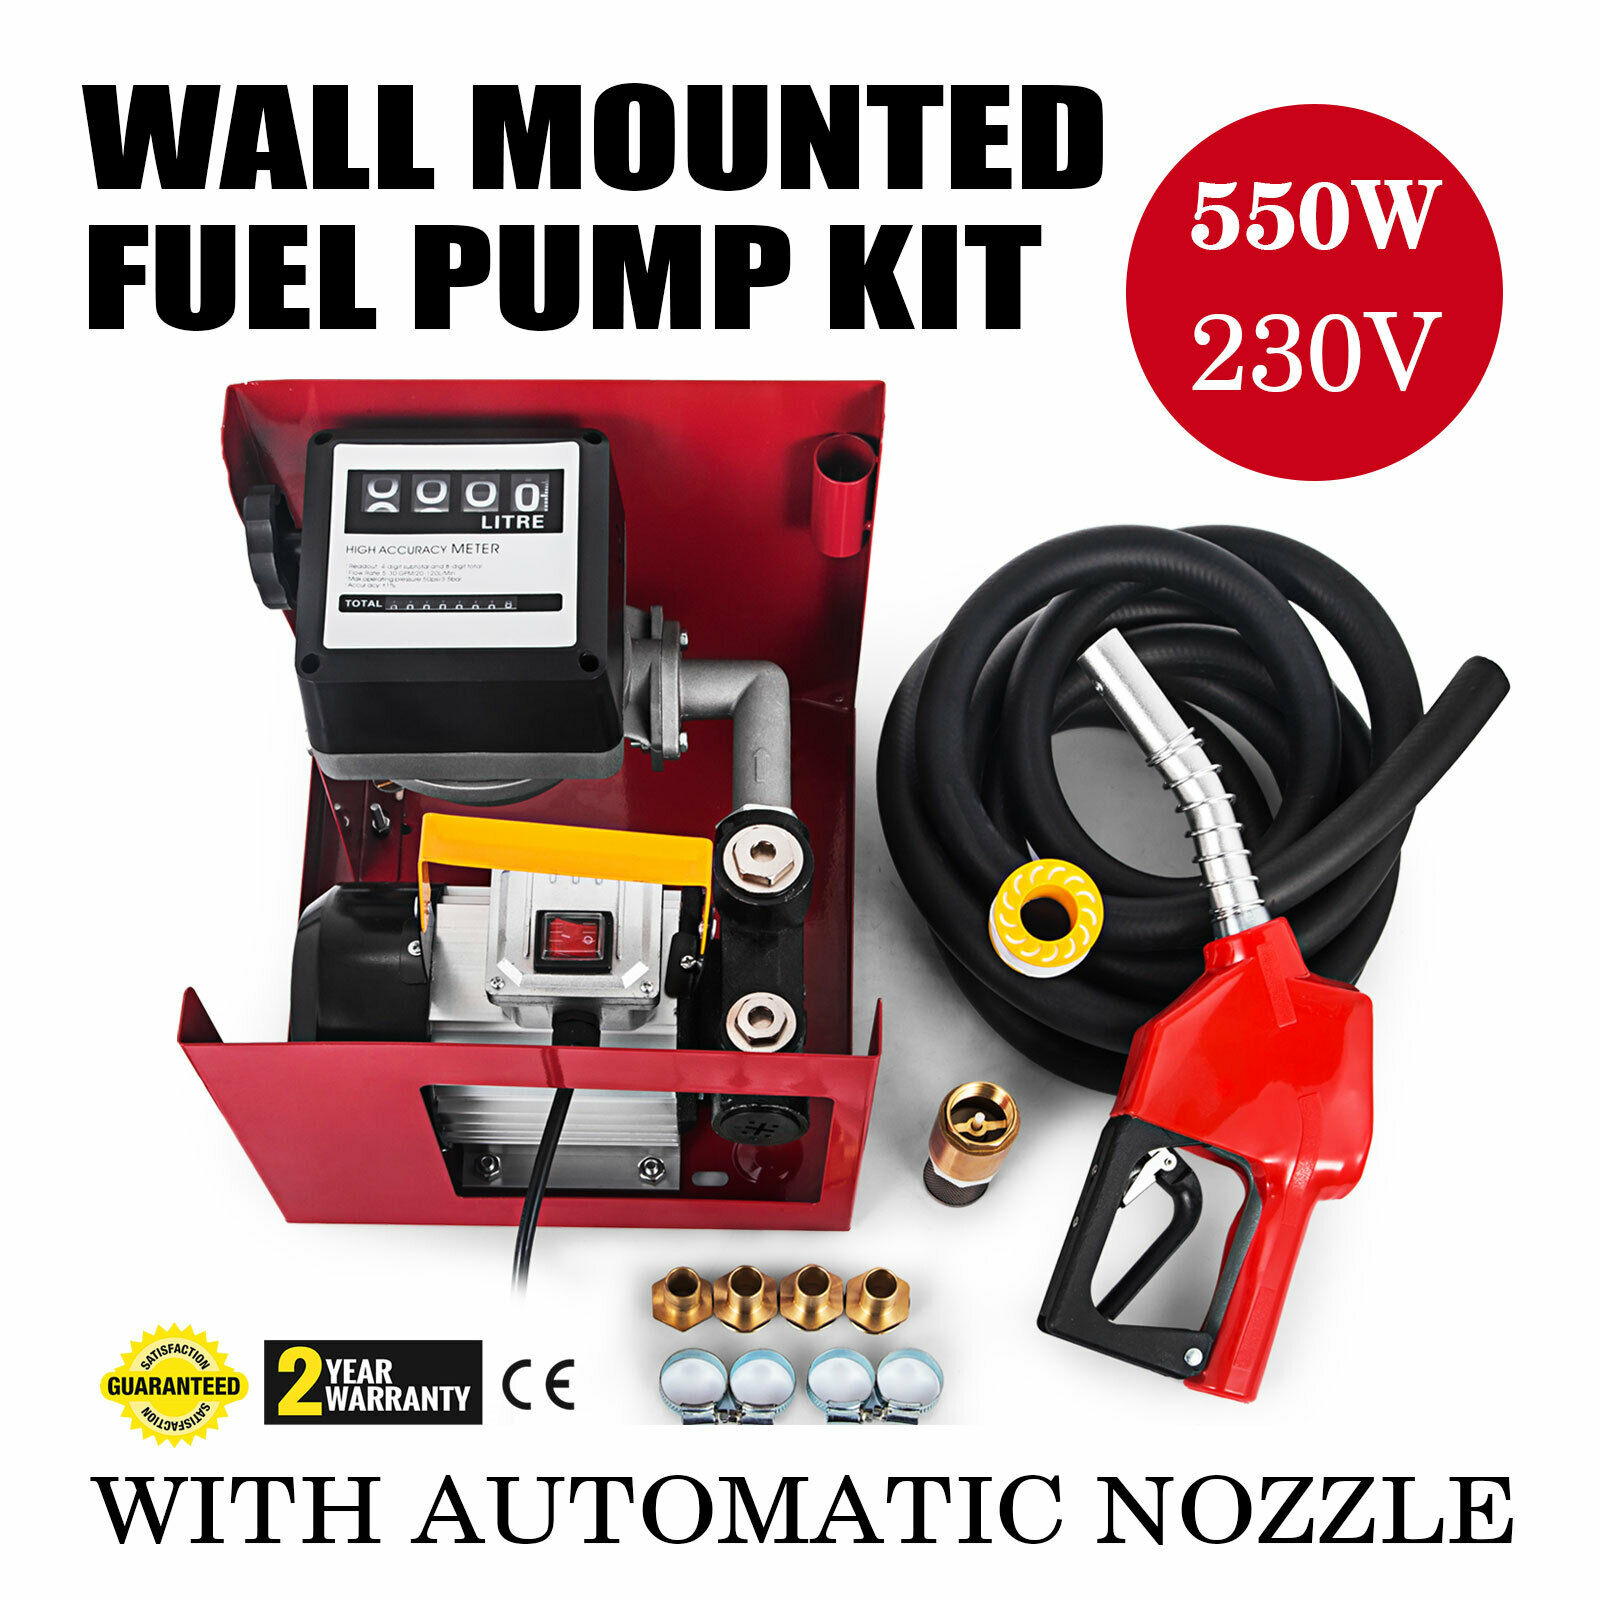 230V 550W Fuel Pump With Automatic Nozzle 60L / Min Diesel Induction Motor